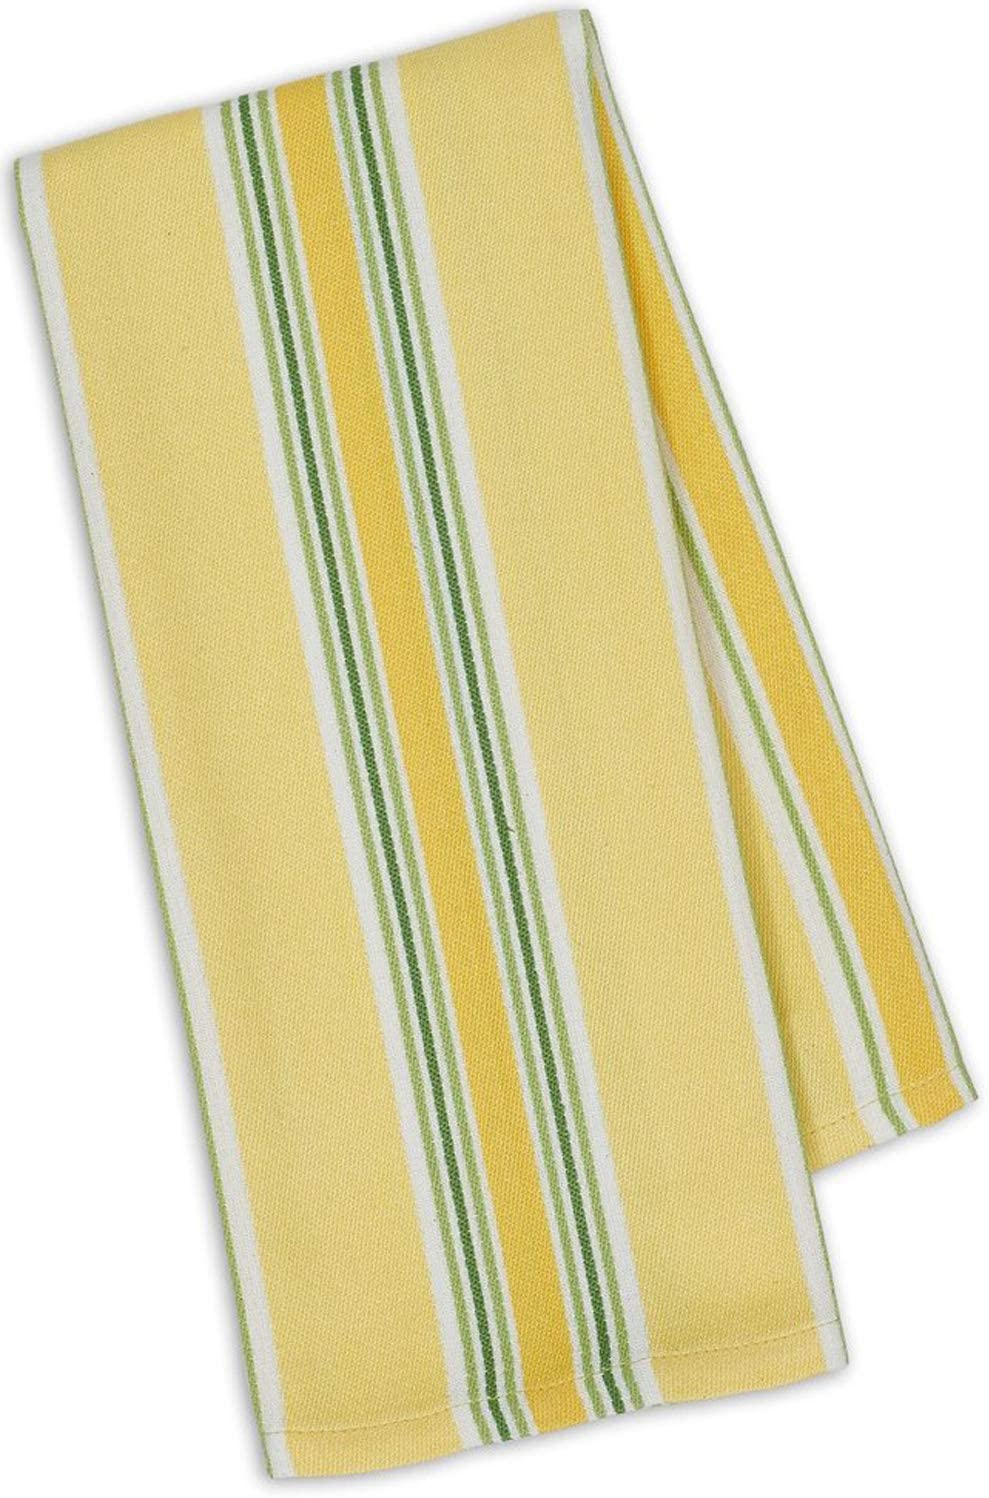 Design Imports Lemon Bliss Table Linens, 18-Inch by 28-Inch Dishtowel, Limoncello Stripe: Home & Kitchen